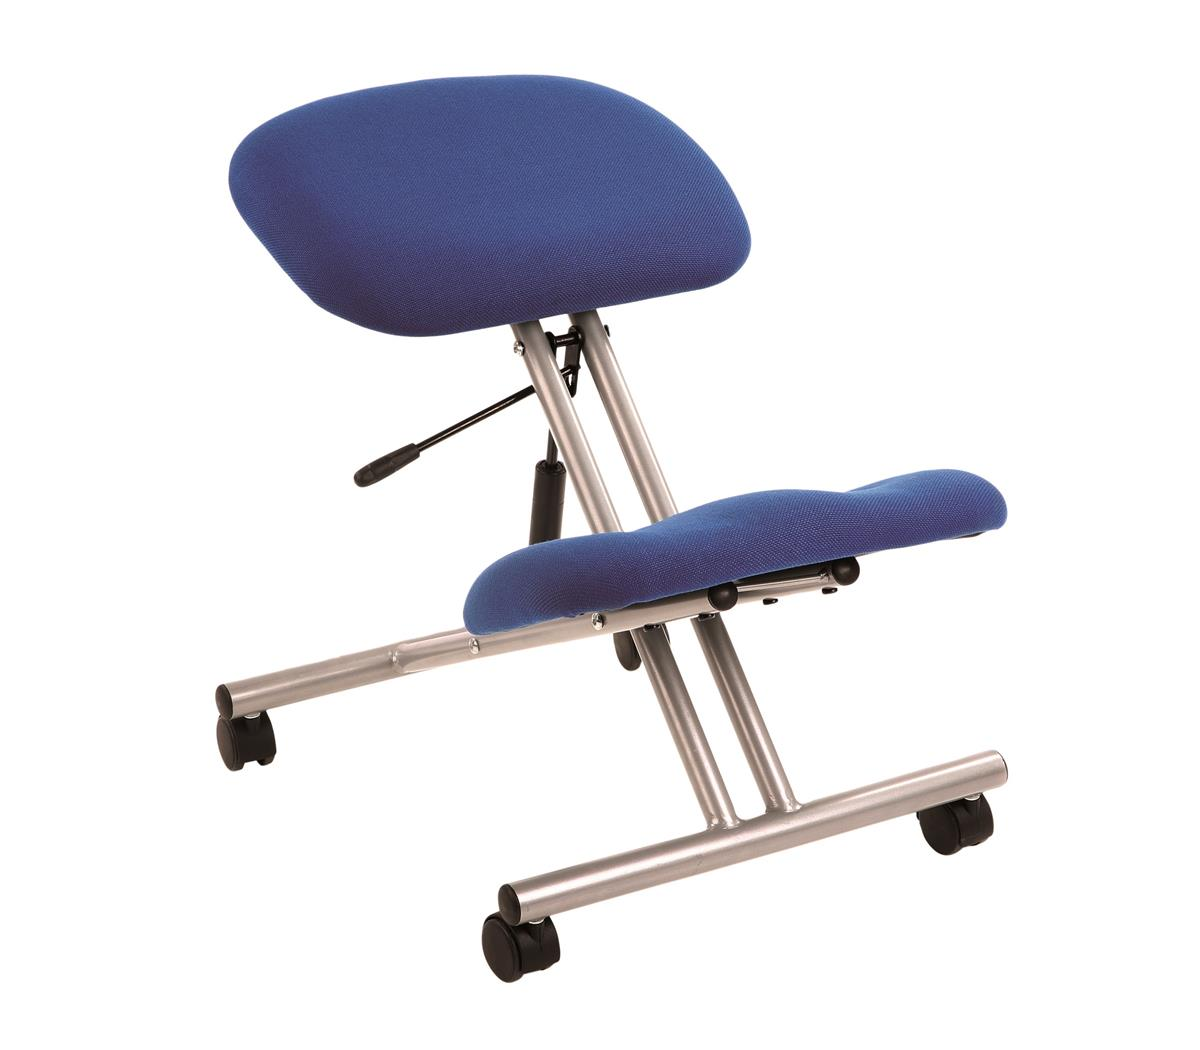 Image for Trexus Kneeling Chair Angle Adjustment Padded Blue Ref PS2144S